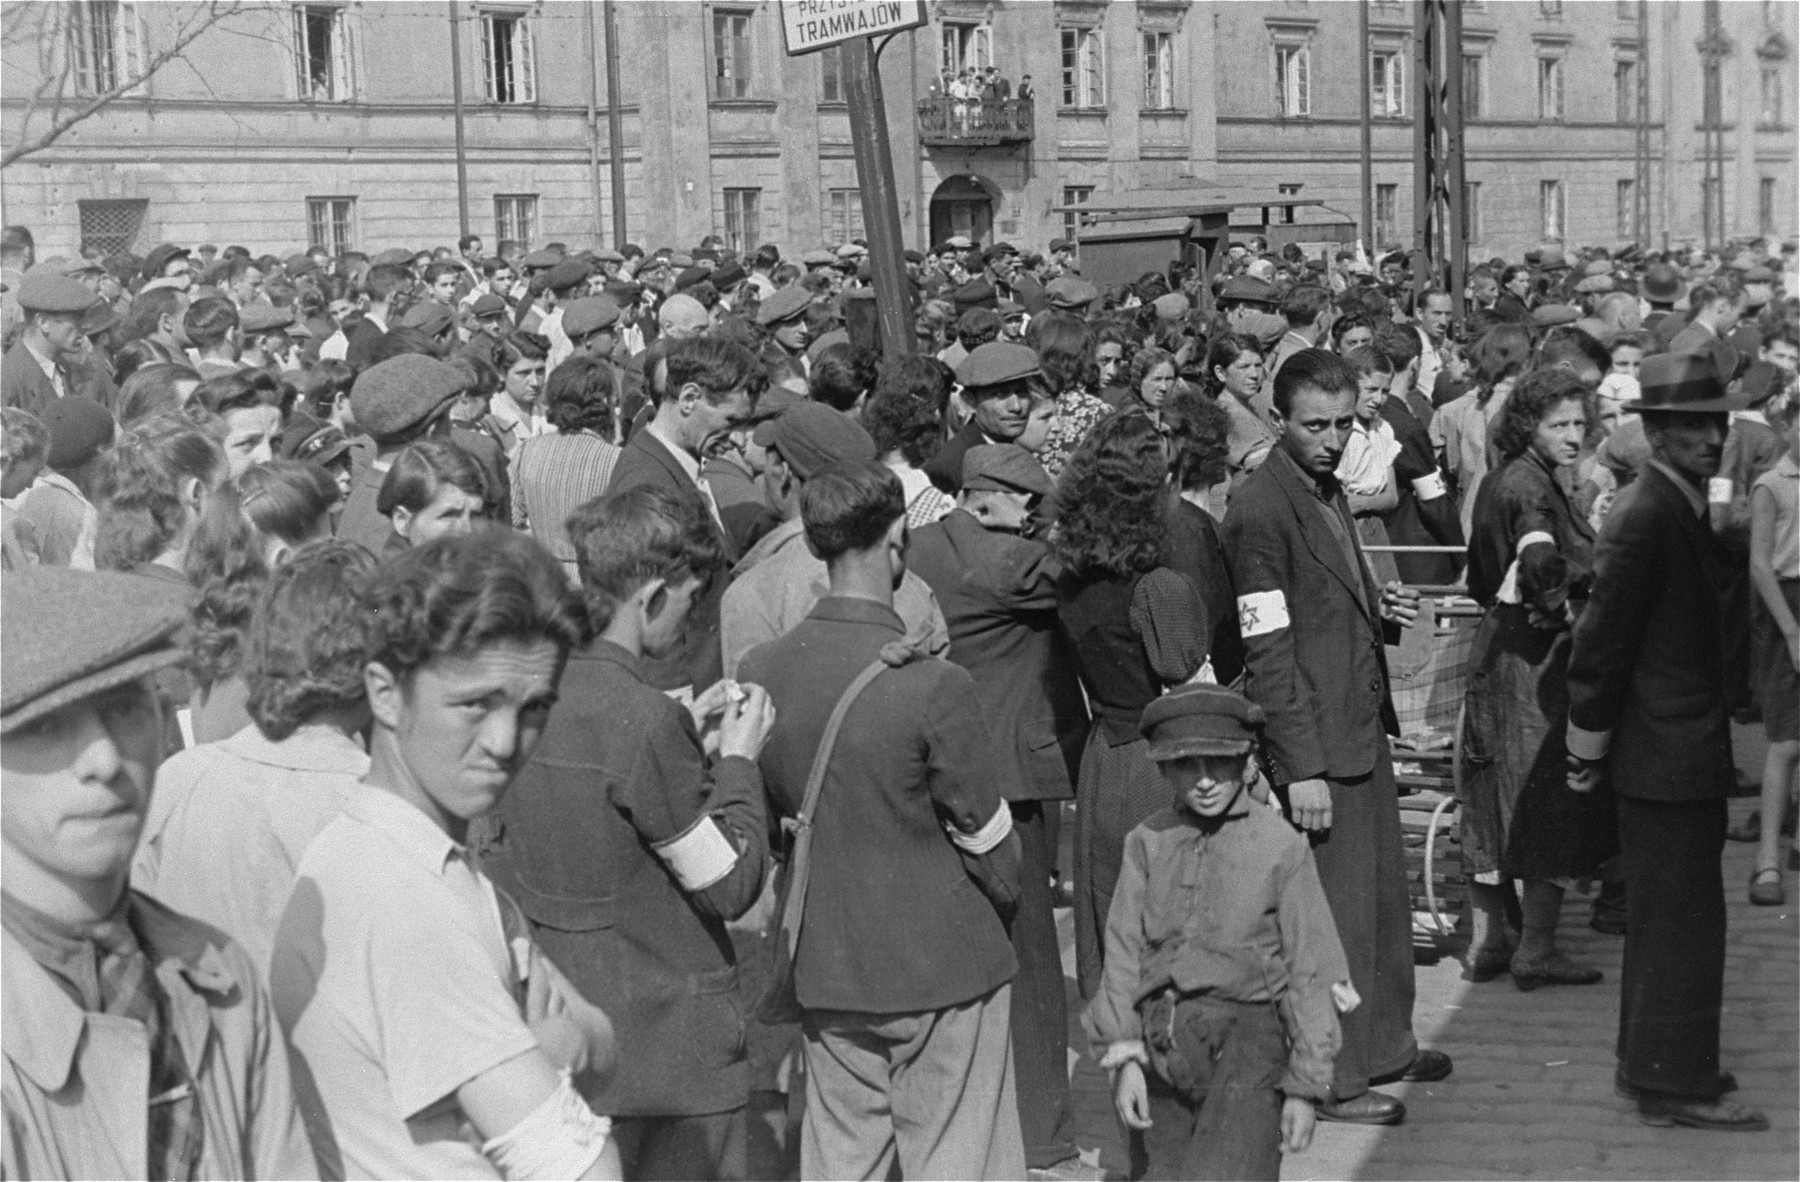 Jews gathered on the plaza at Zamenhofa and Nowolipki Streets in the Warsaw ghetto listen to an announcement on the public address system.